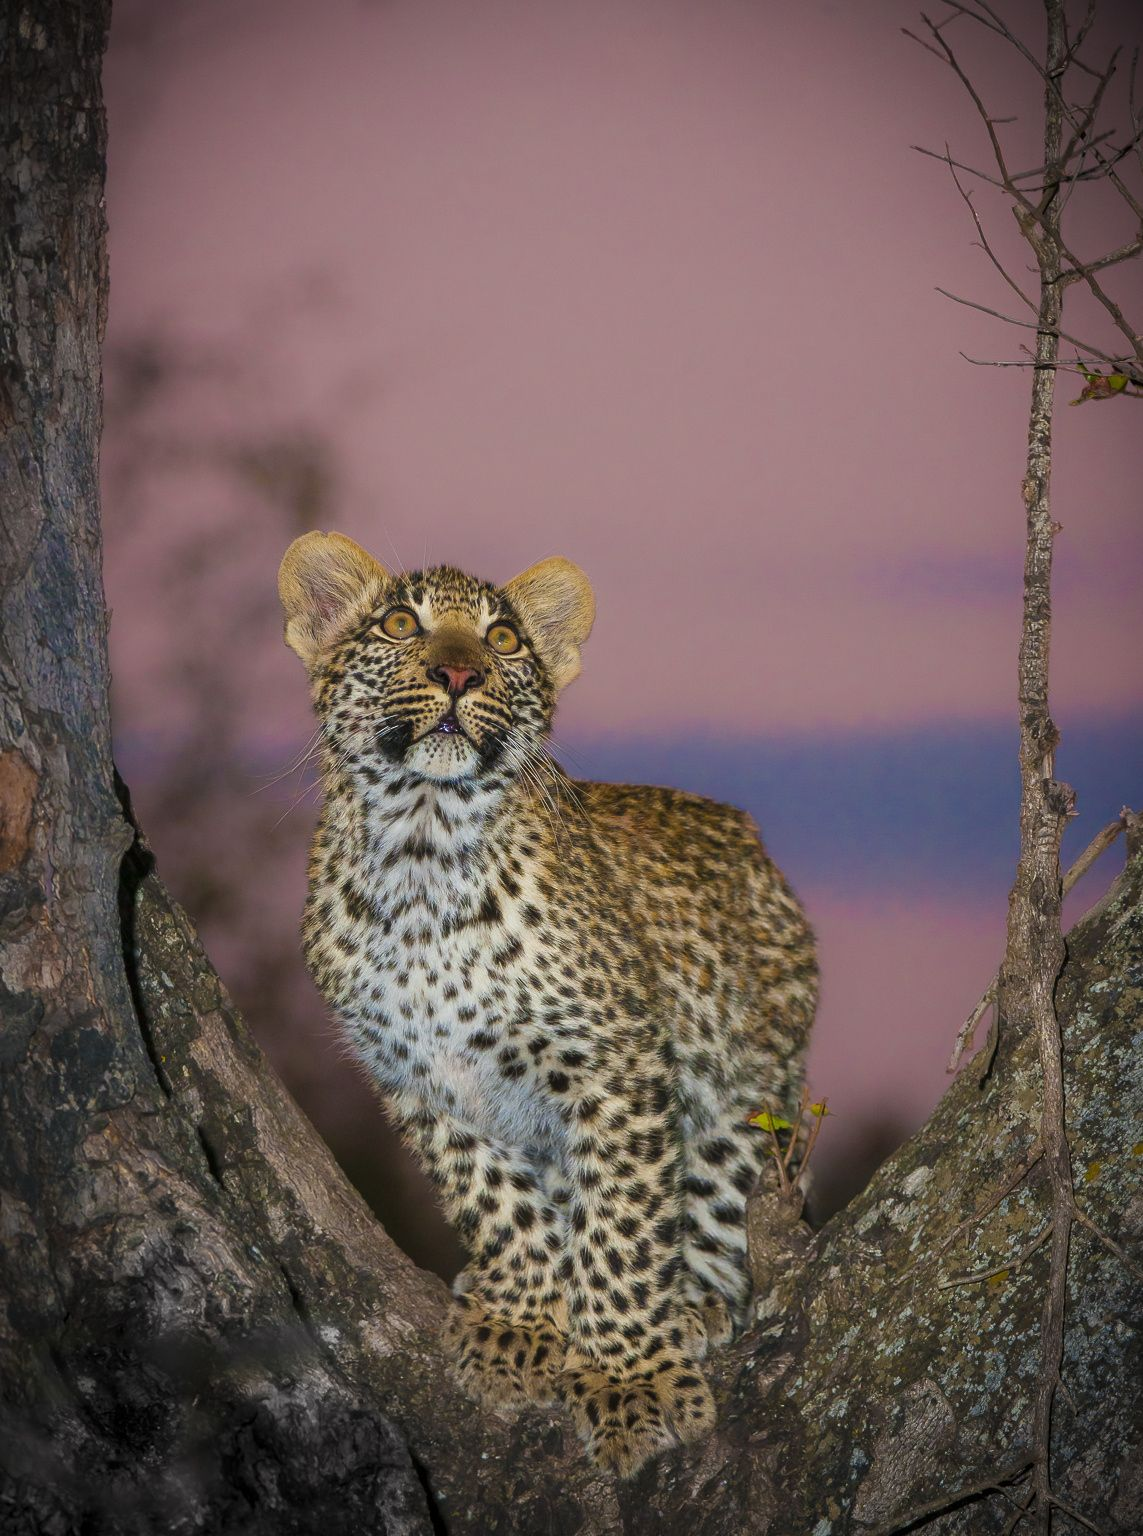 a4468bfdf4 Looking Up by Wim van den Heever on 500px